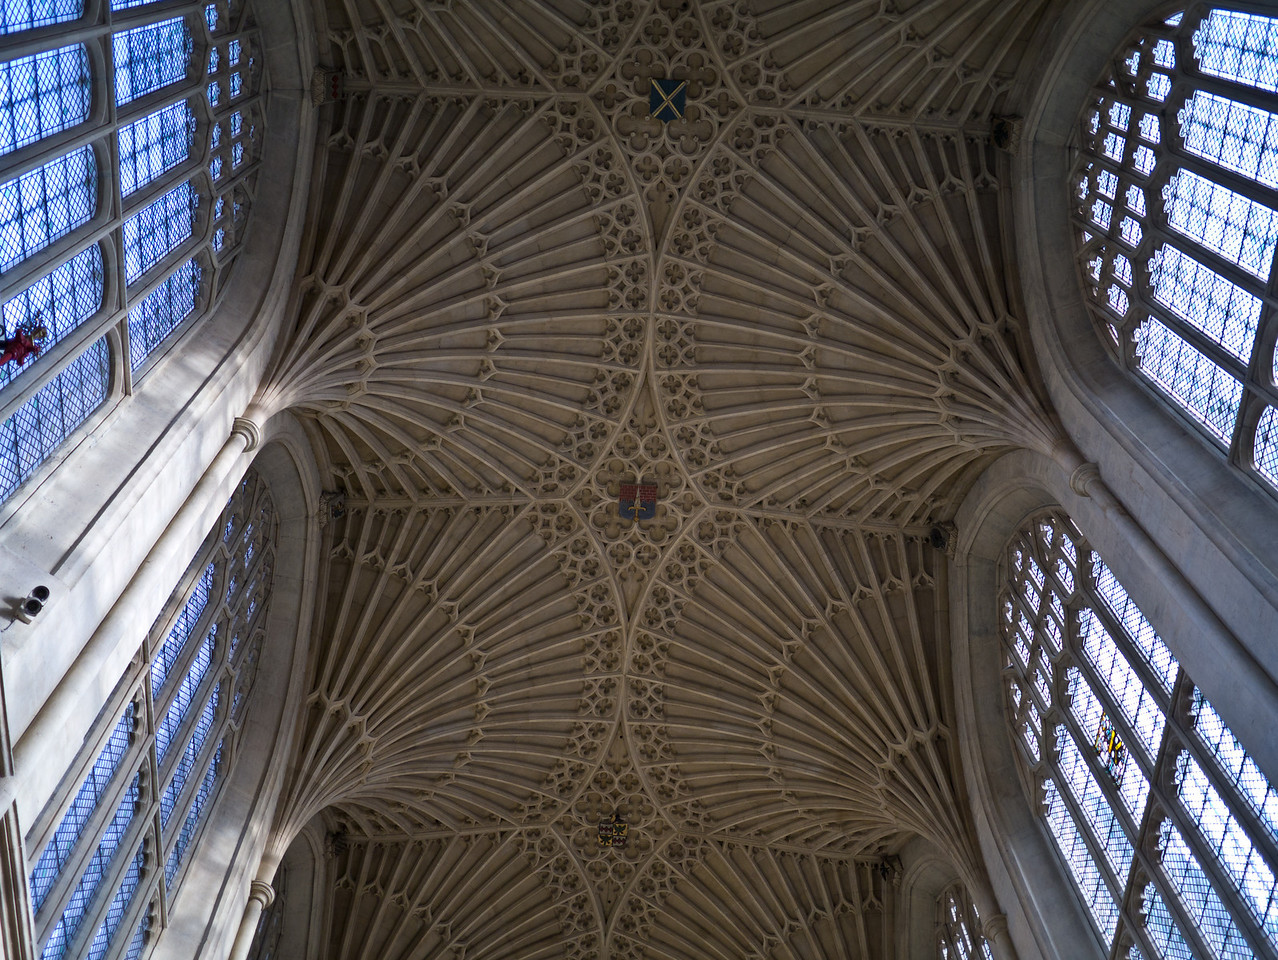 Looking at the roof of the Abbey